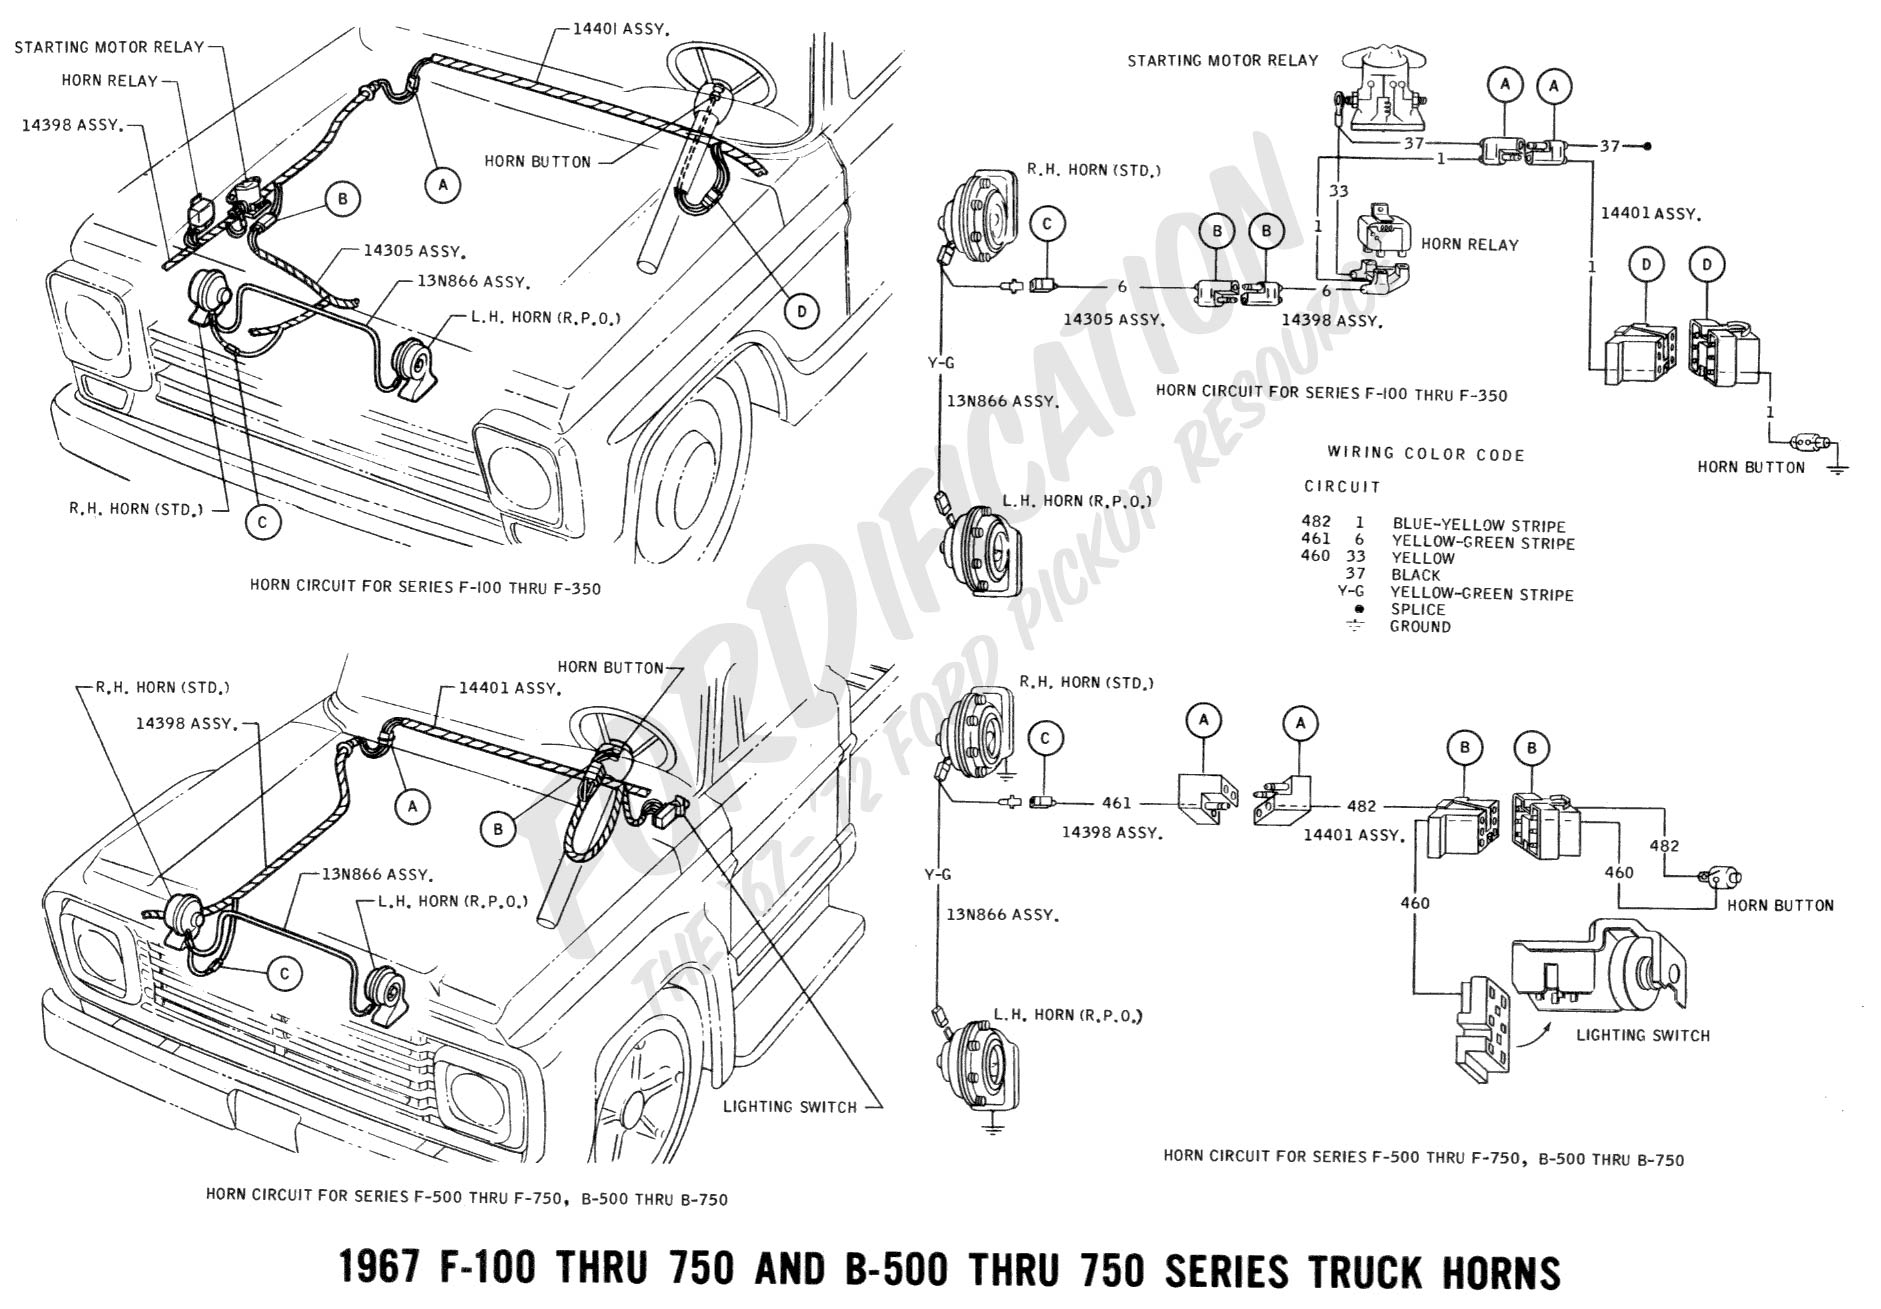 hight resolution of 1967 f100 wiring diagrams wiring diagram paper 1967 f 100 wiring harness